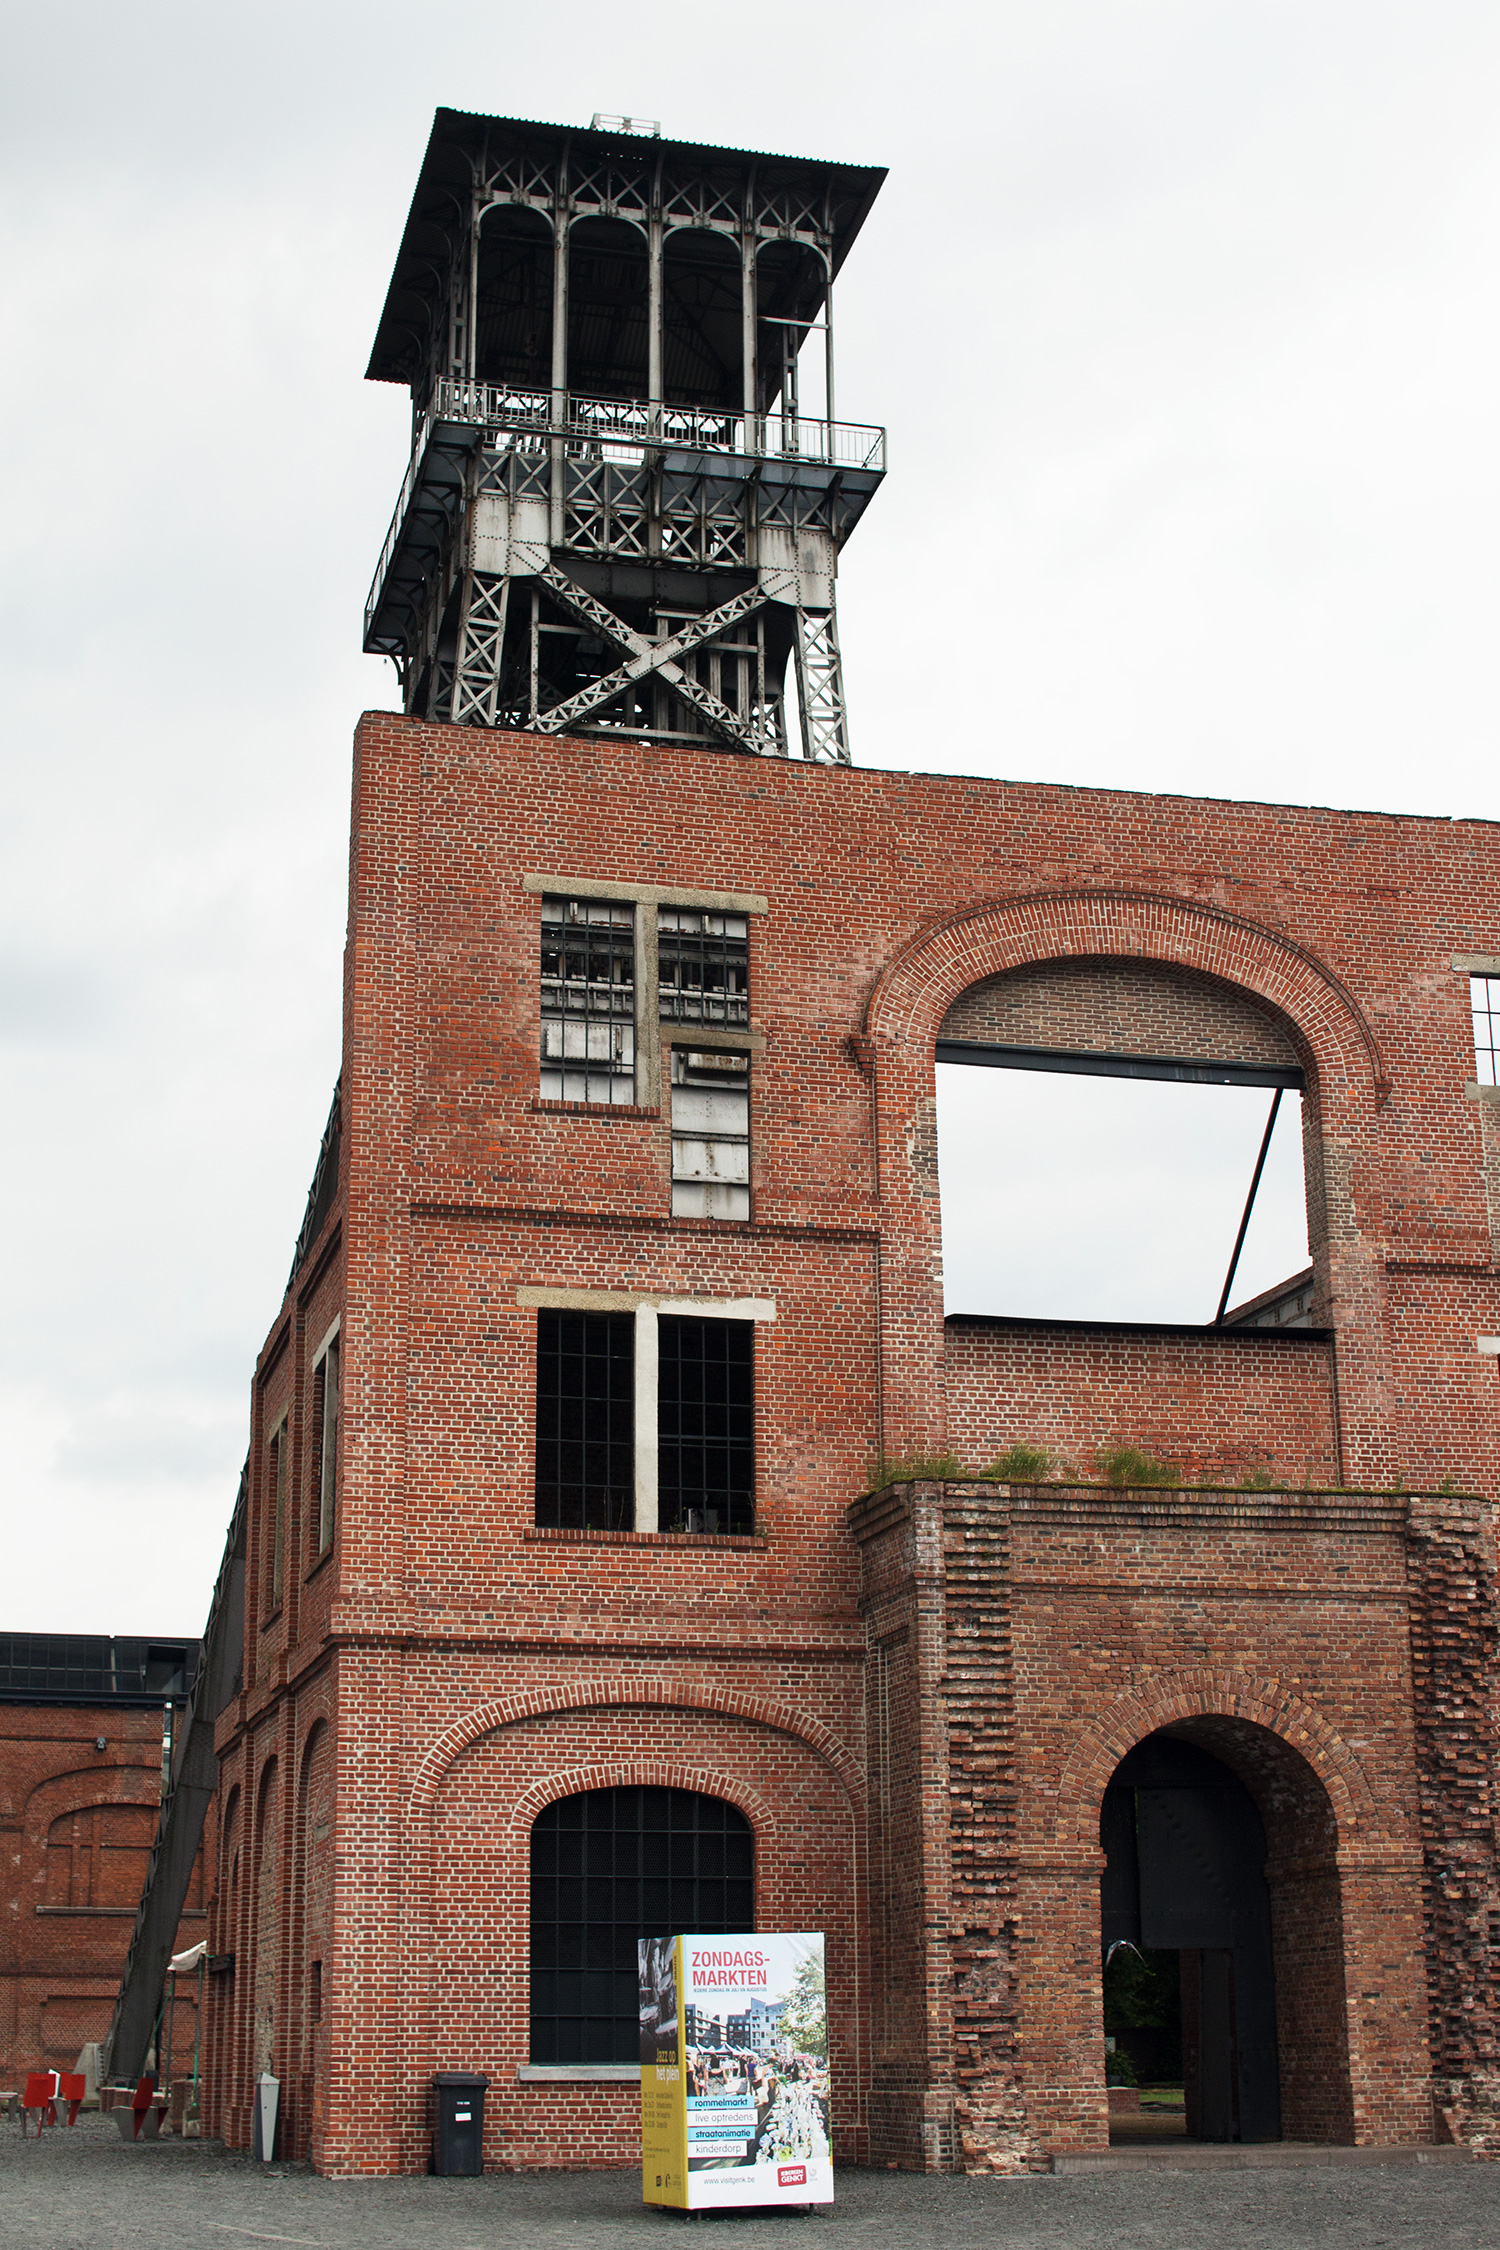 Image of former coal mines at C-mine in Genk